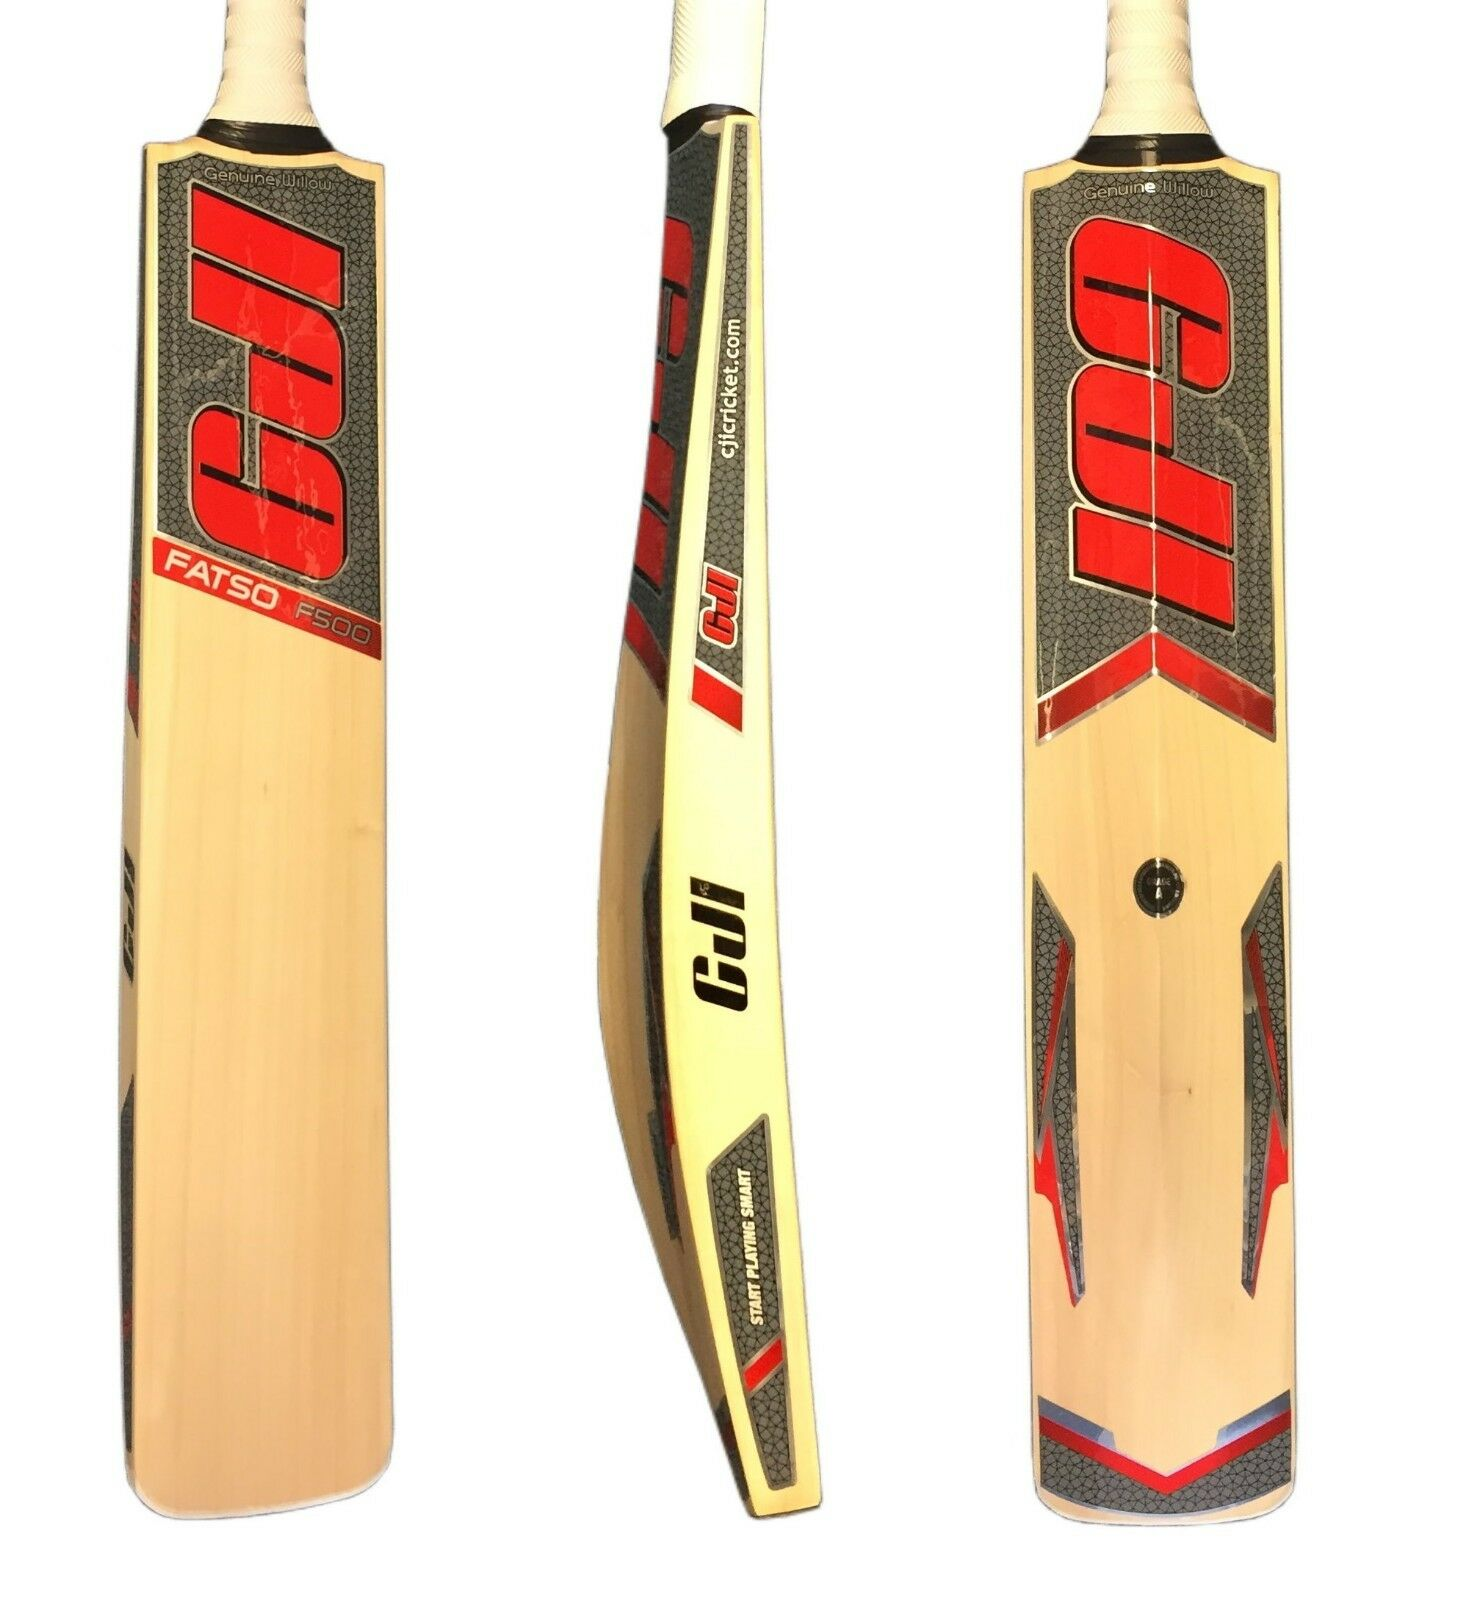 LATEST CJI FATSO F500 LIMITED EDITION RED Full Size weight 3lb 4ozs + Extras